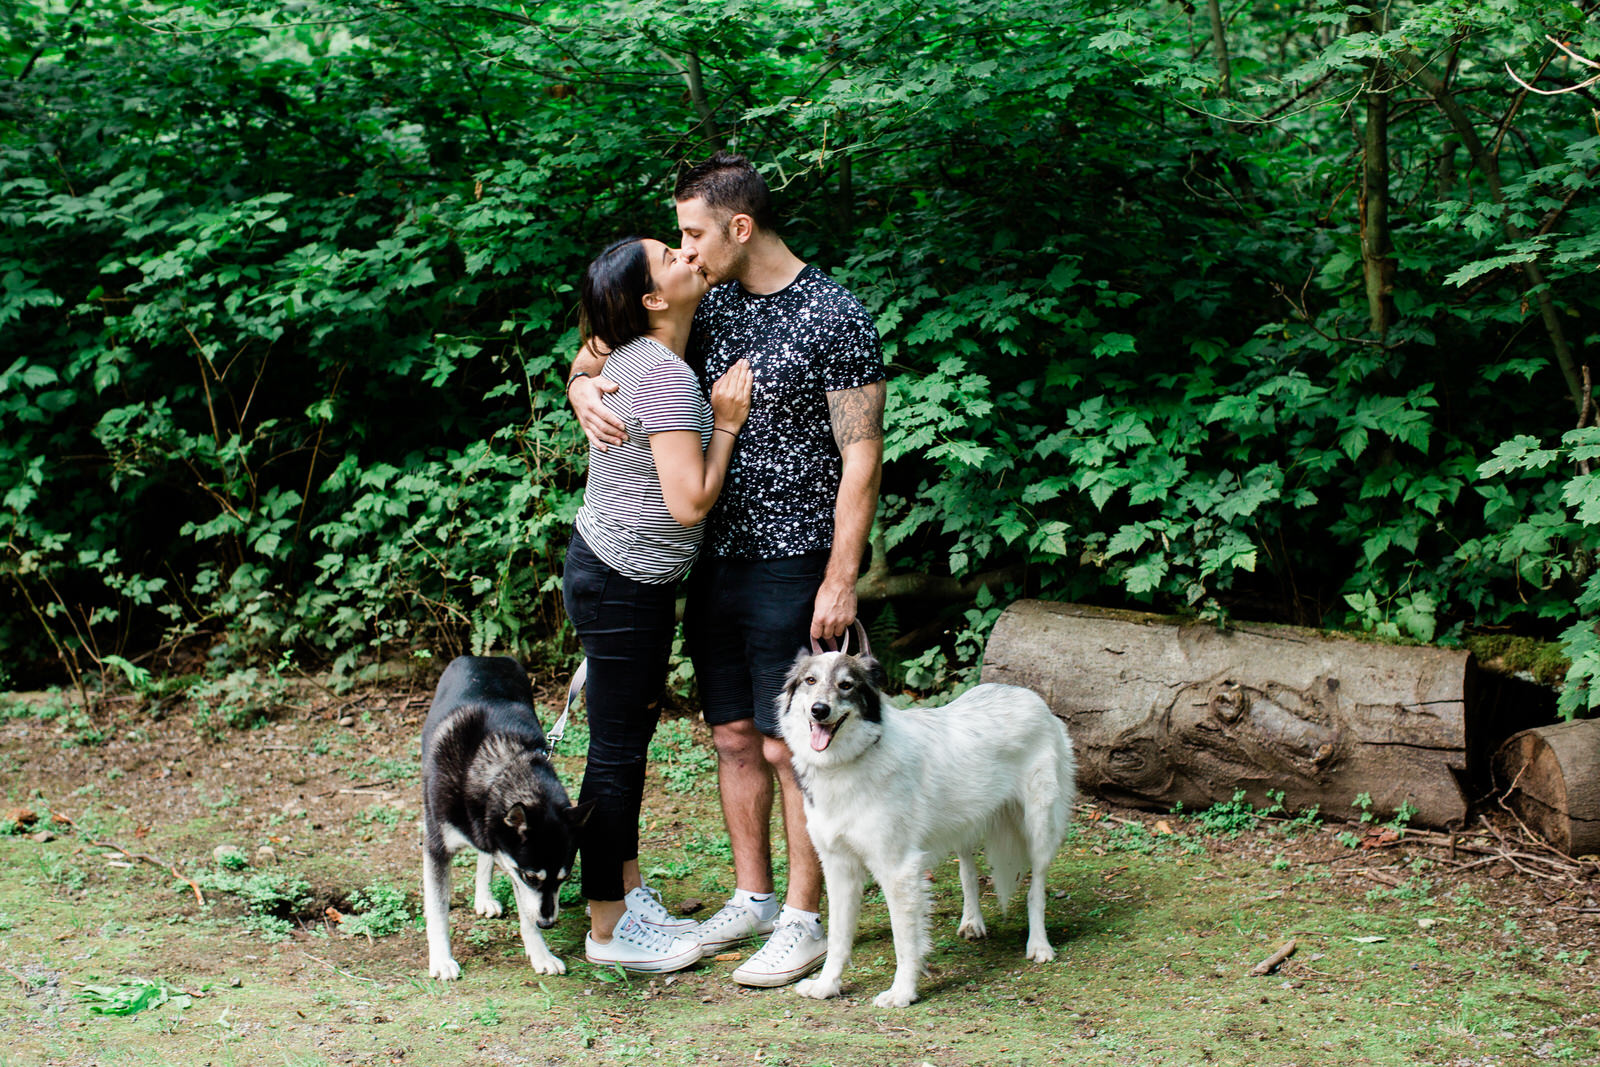 West Coast Outdoor family session with dogs, Michele Mateus Photography